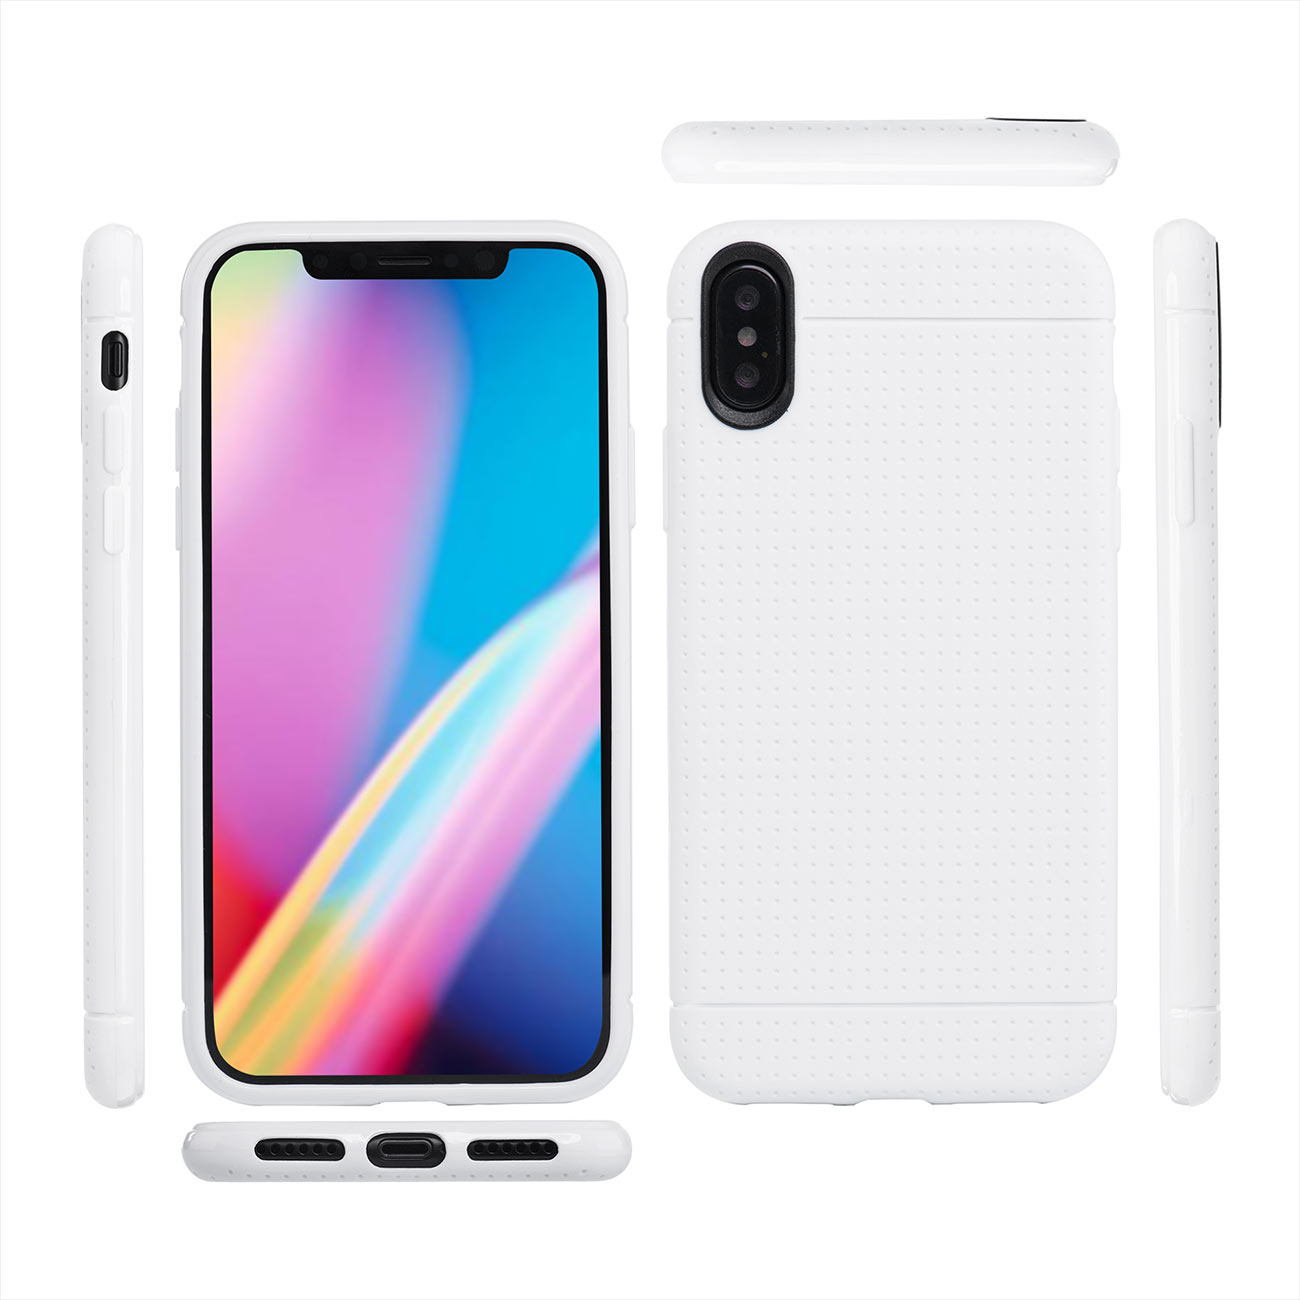 MutuTec iPhone X Custodia Protezione Cover Custodia Rigida - Nero